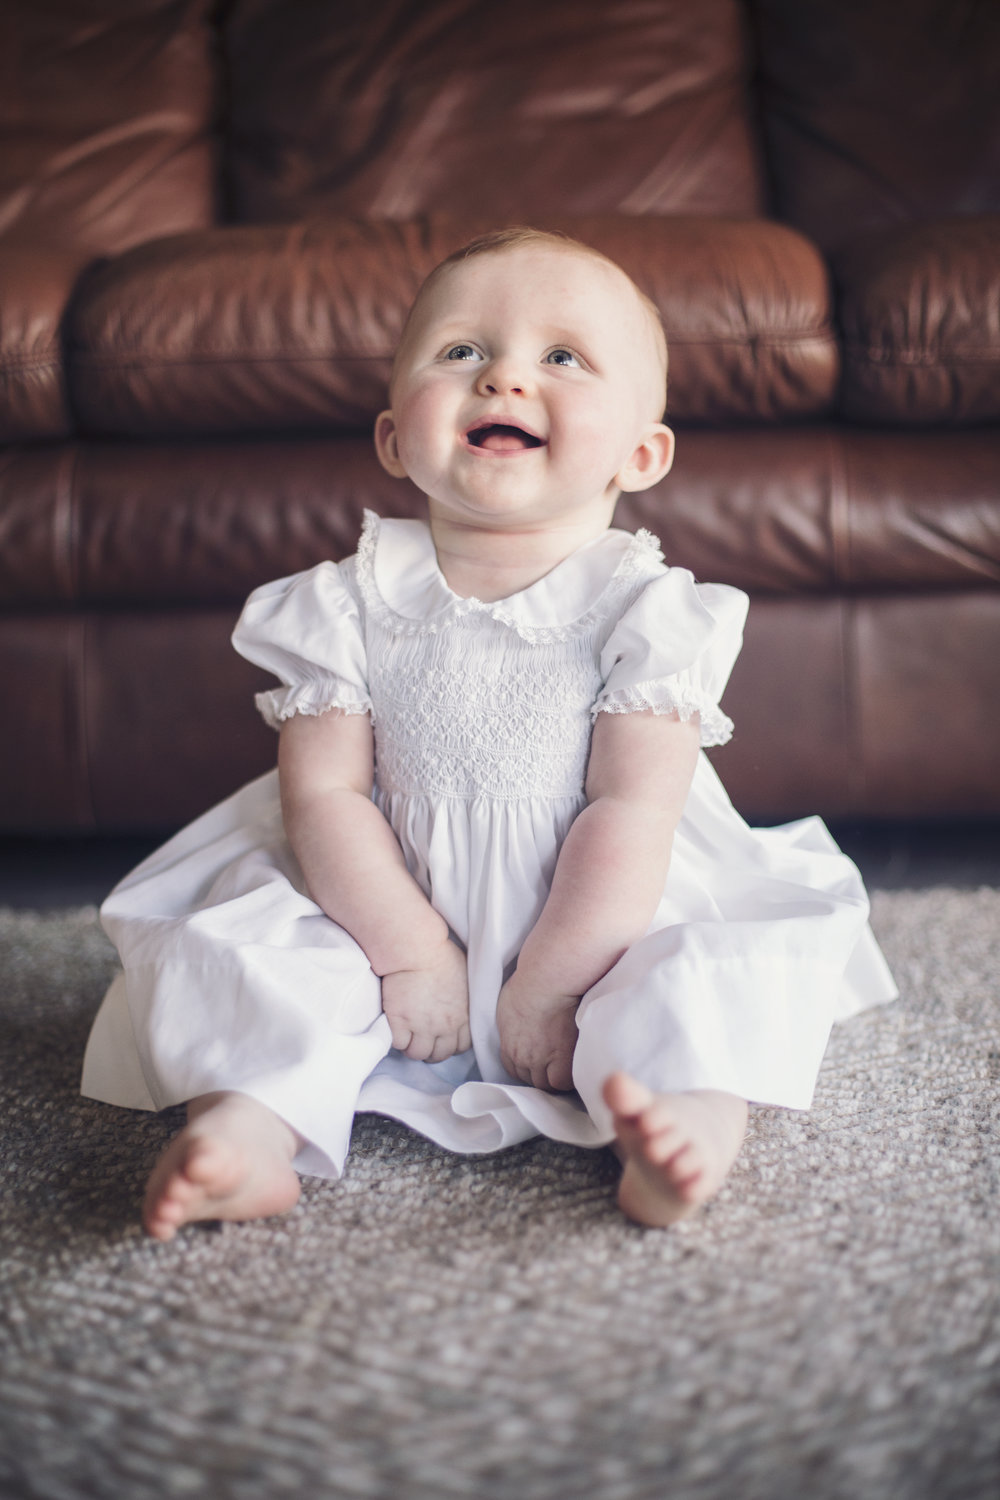 Hannah is so cute in this classic baby white dress. She looks just like a doll :)